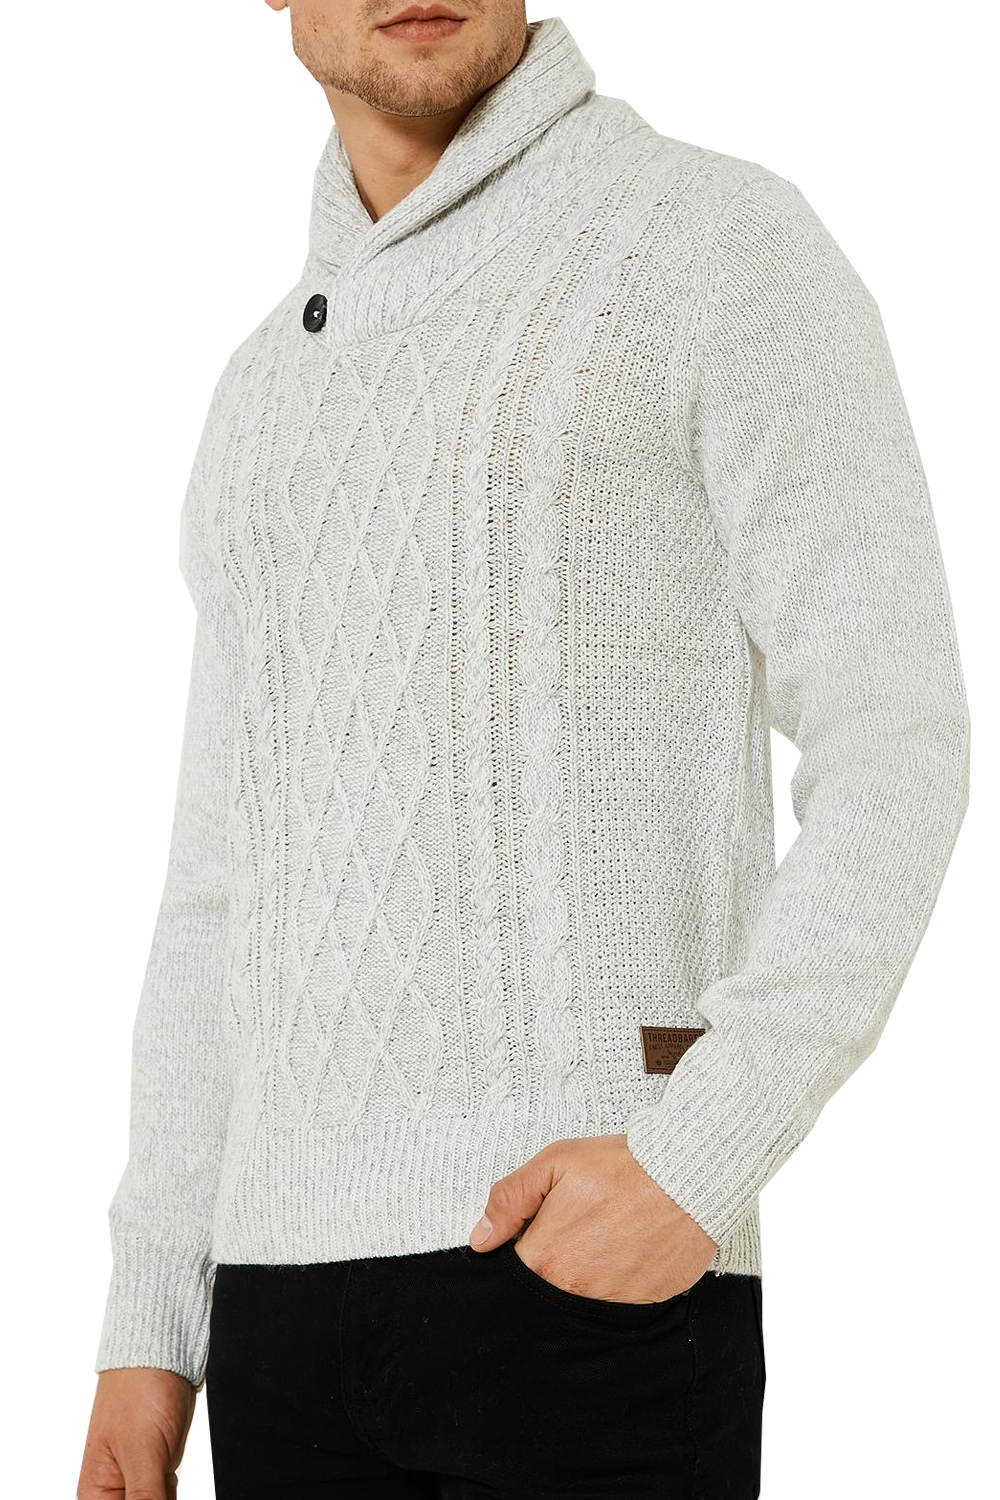 Threadbare Mens Perth Cowl Neck Sweater Cable Knit Ribbed Cuff ...